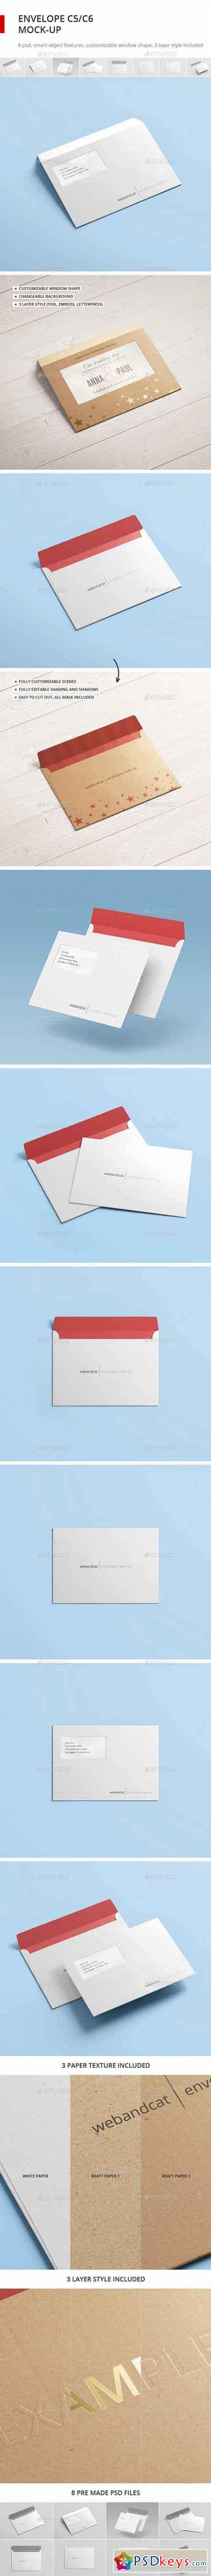 Envelope C5 C6 Mock-up 16559838 » Free Download Photoshop